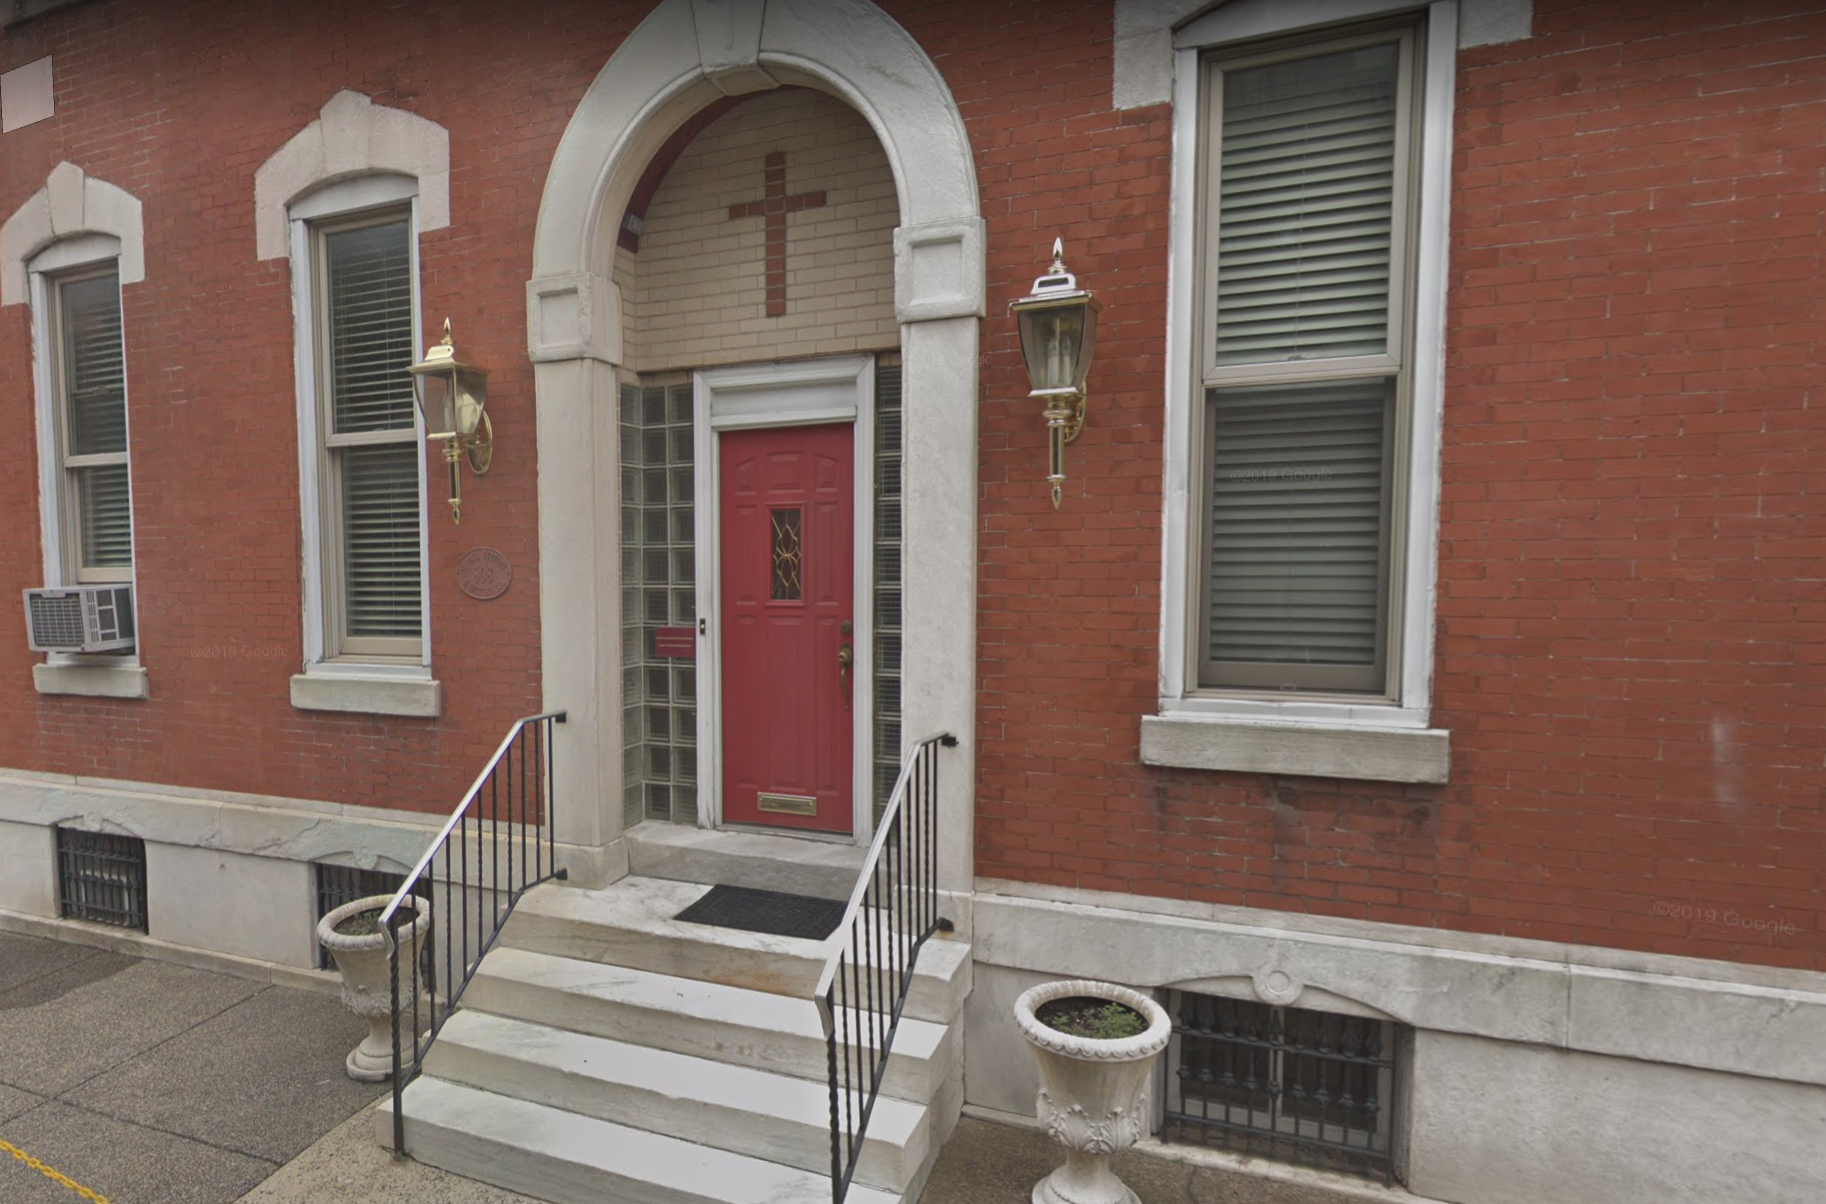 Two South Philly religious institutions nominated for the Philadelphia Register of Historic Places - South Philly Review